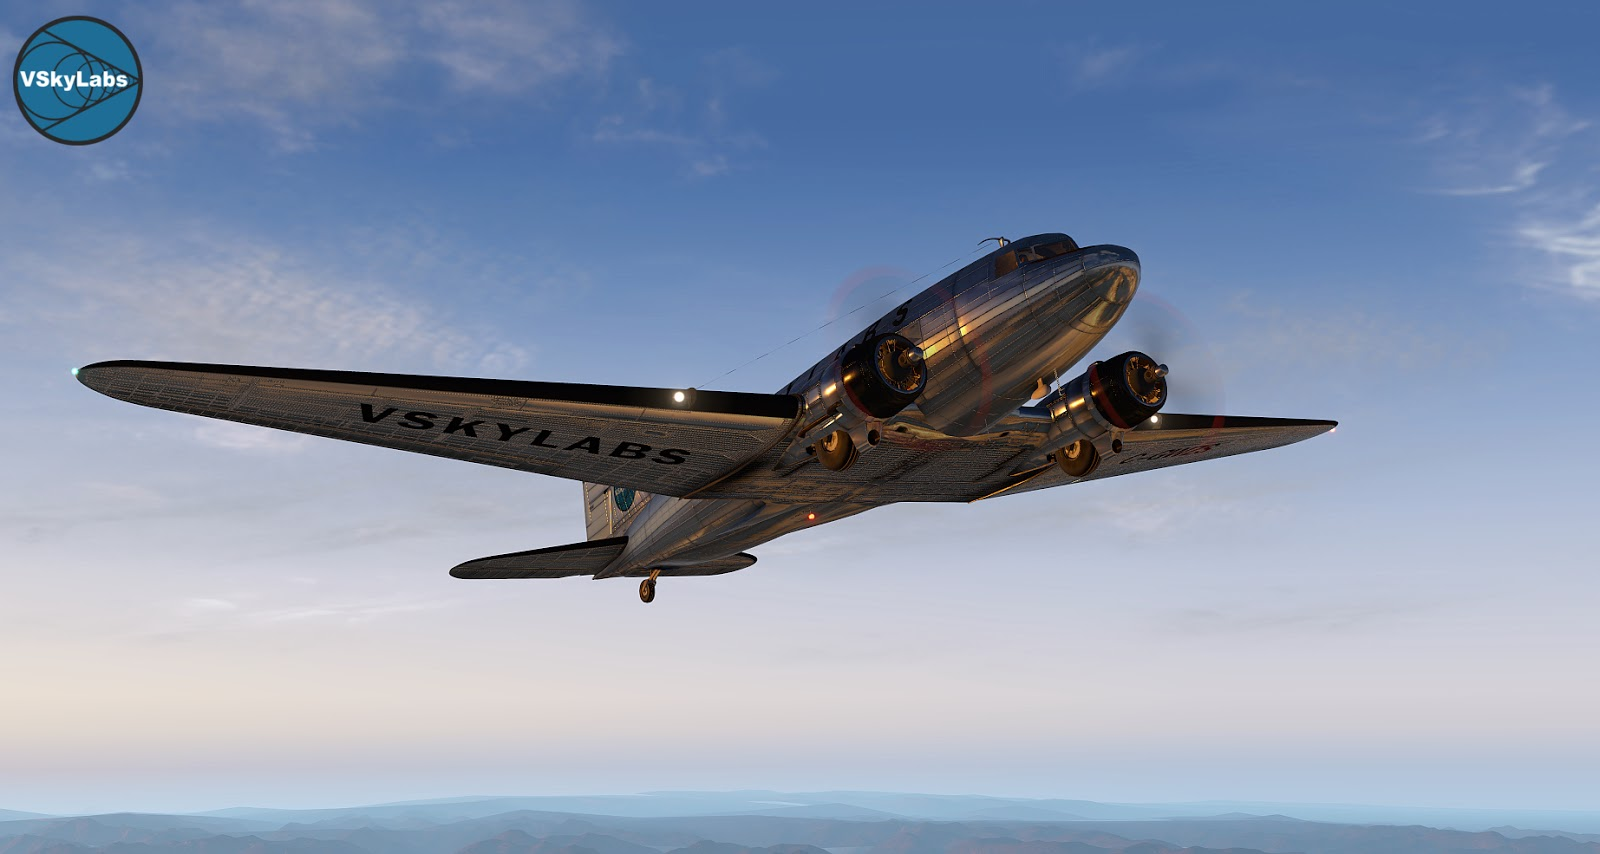 The VSKYLABS C-47 Skytrain FLP